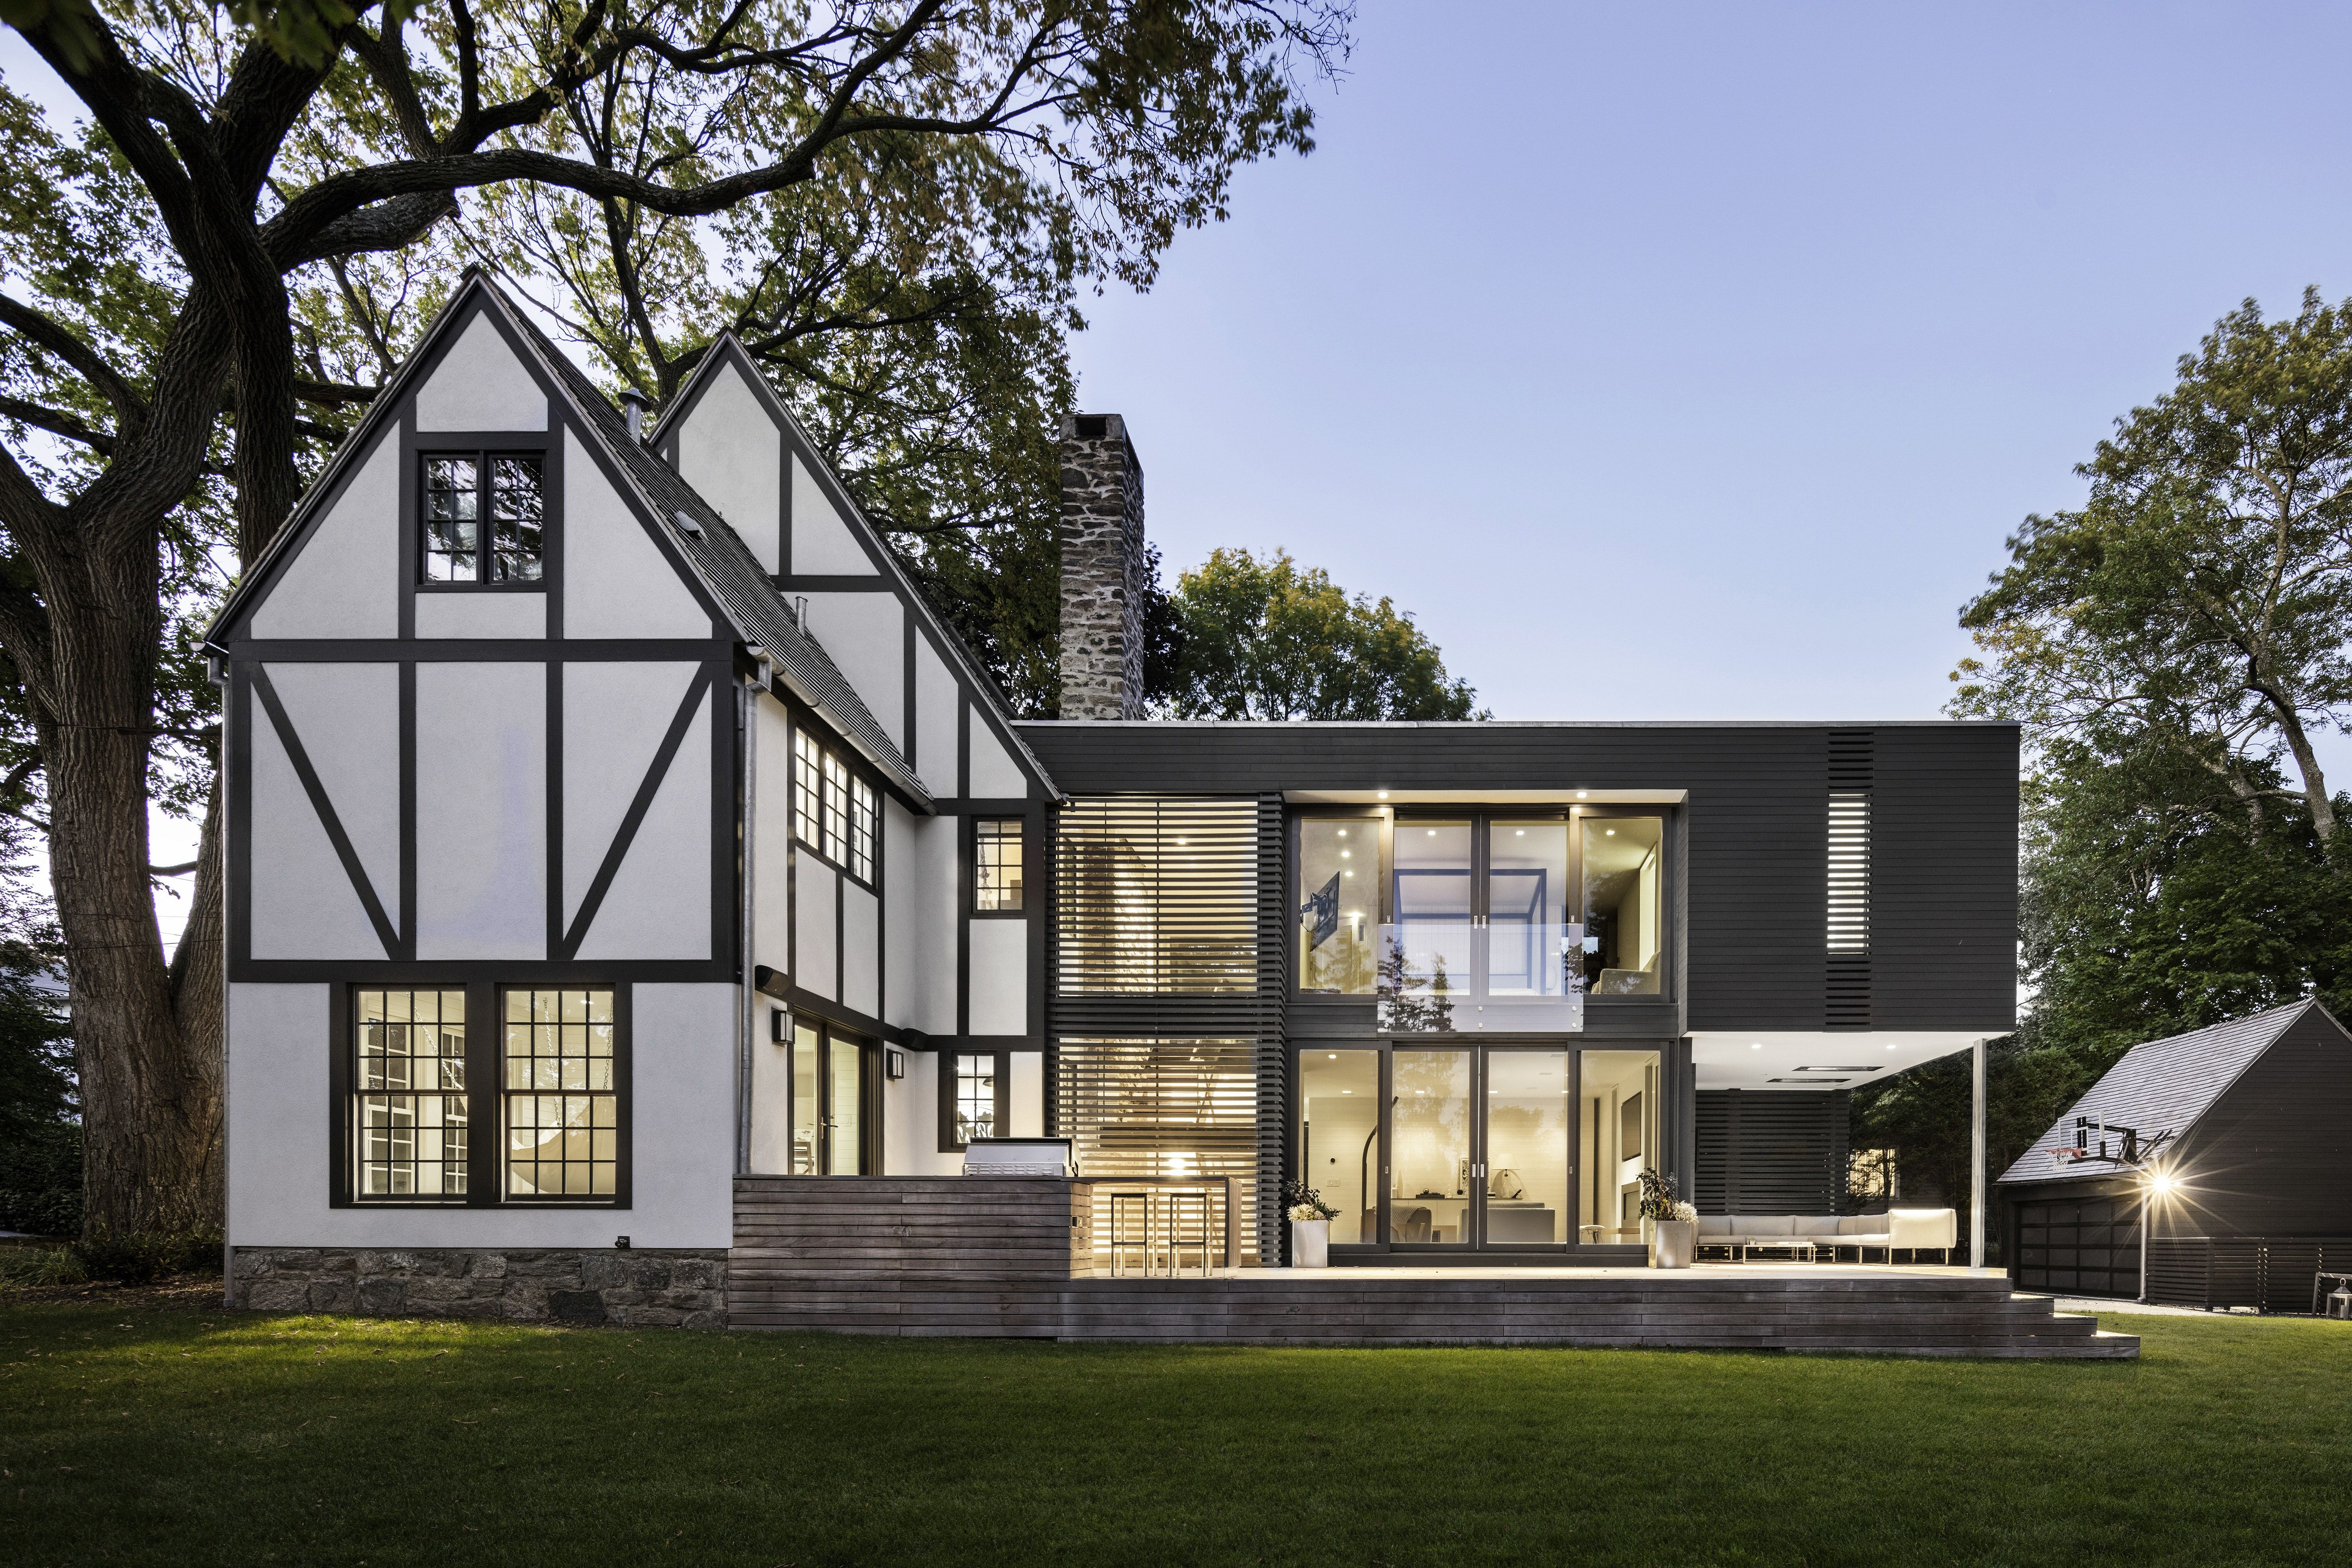 35hp Tudor Style House With Modern Addition By Joeb Moore